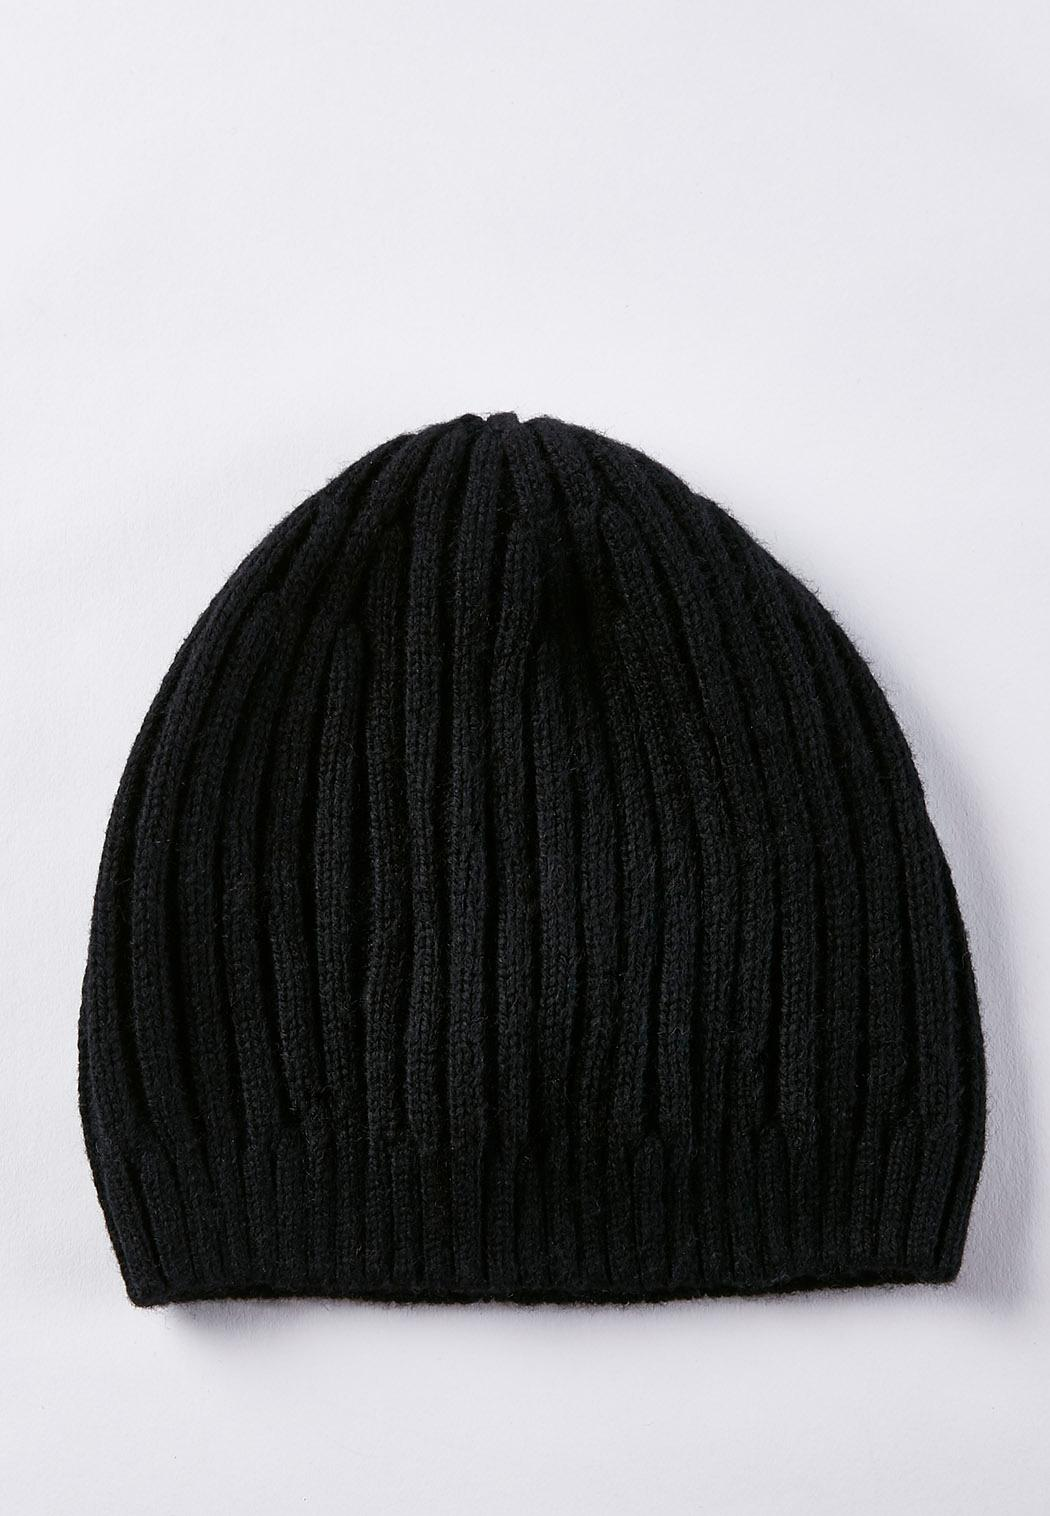 Cato fashions careers - Cable Knit Beanie Hat